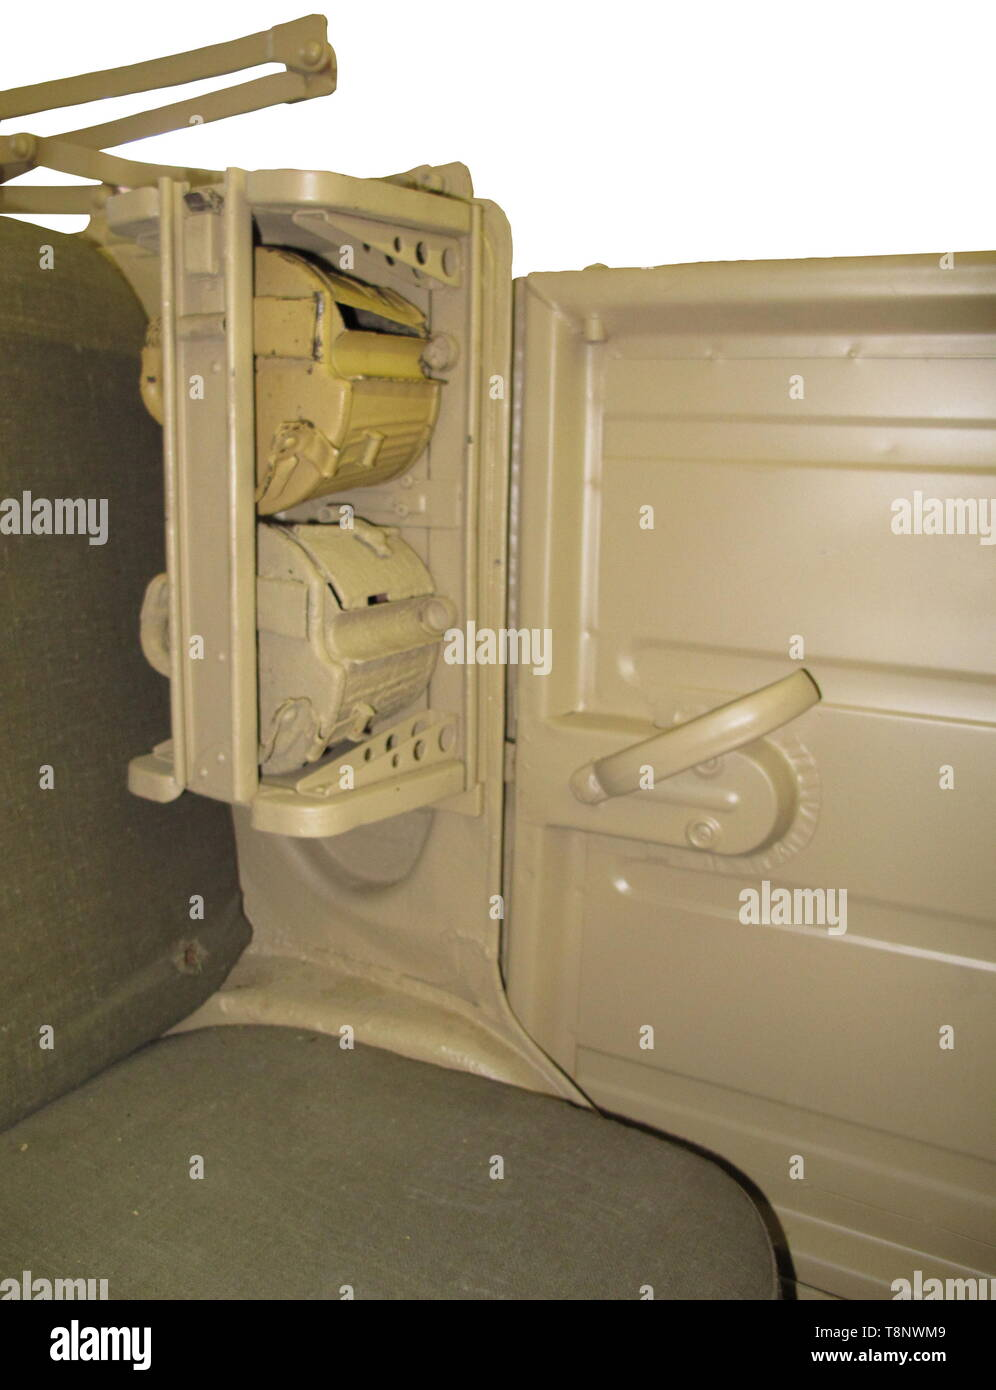 A VW-Kübelwagen type 82 Production year 1942. Roadworthy. Chassis no. 2-007969, structure no. 7911. Unrestored condition, modifications to ensure further drivability. Chassis with dotted chassis number. Gearbox, front axle, rear axle, steering gear with KDF mark (early type with aluminium lid) and all four shock absorbers original. Engine (30 HP) and braking system replaced (hydraulic brake refitted) as well as floor pans. 16-inch rims riveted, tyres replaced. Original body: All nameplates original as well as the originally welded in rear panel (, Additional-Rights-Clearance-Info-Not-Available Stock Photo